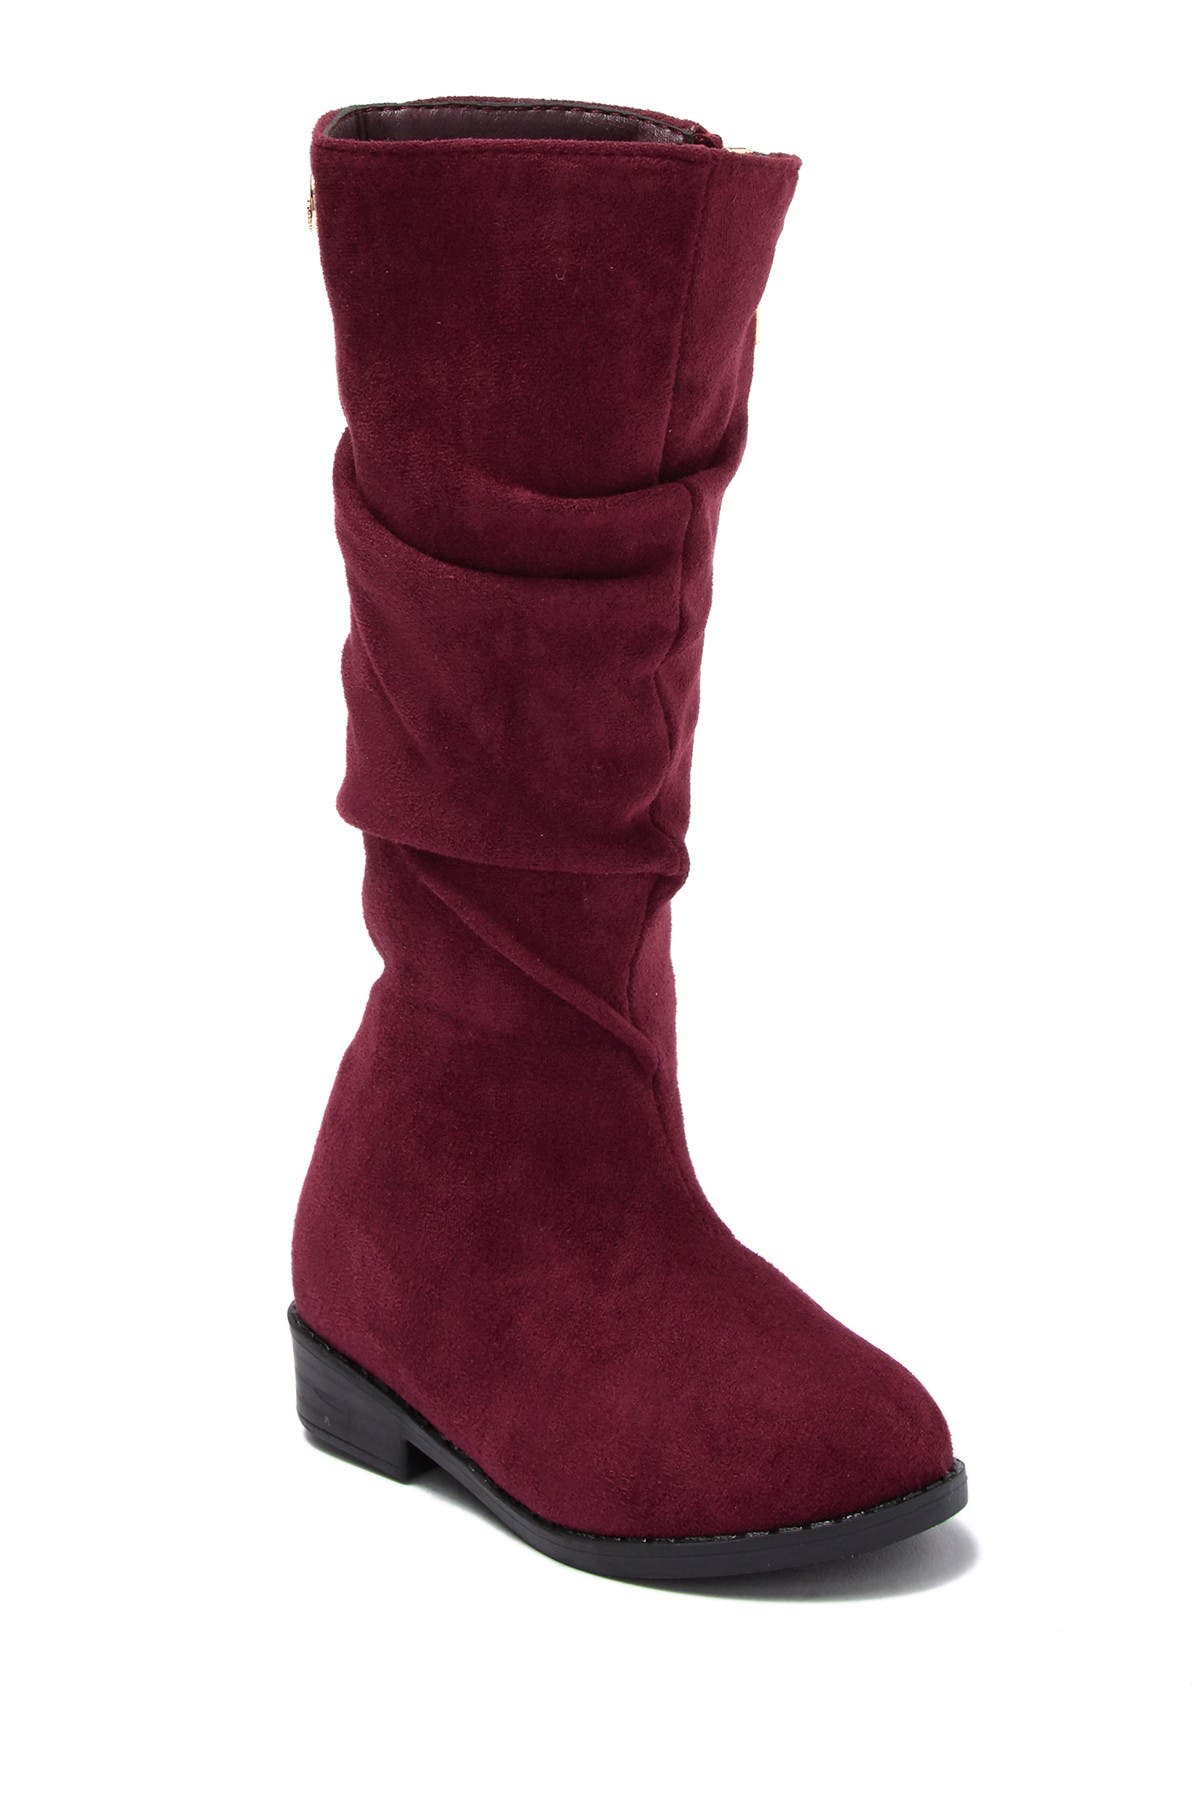 Image of Tahari Askot Tall Boot